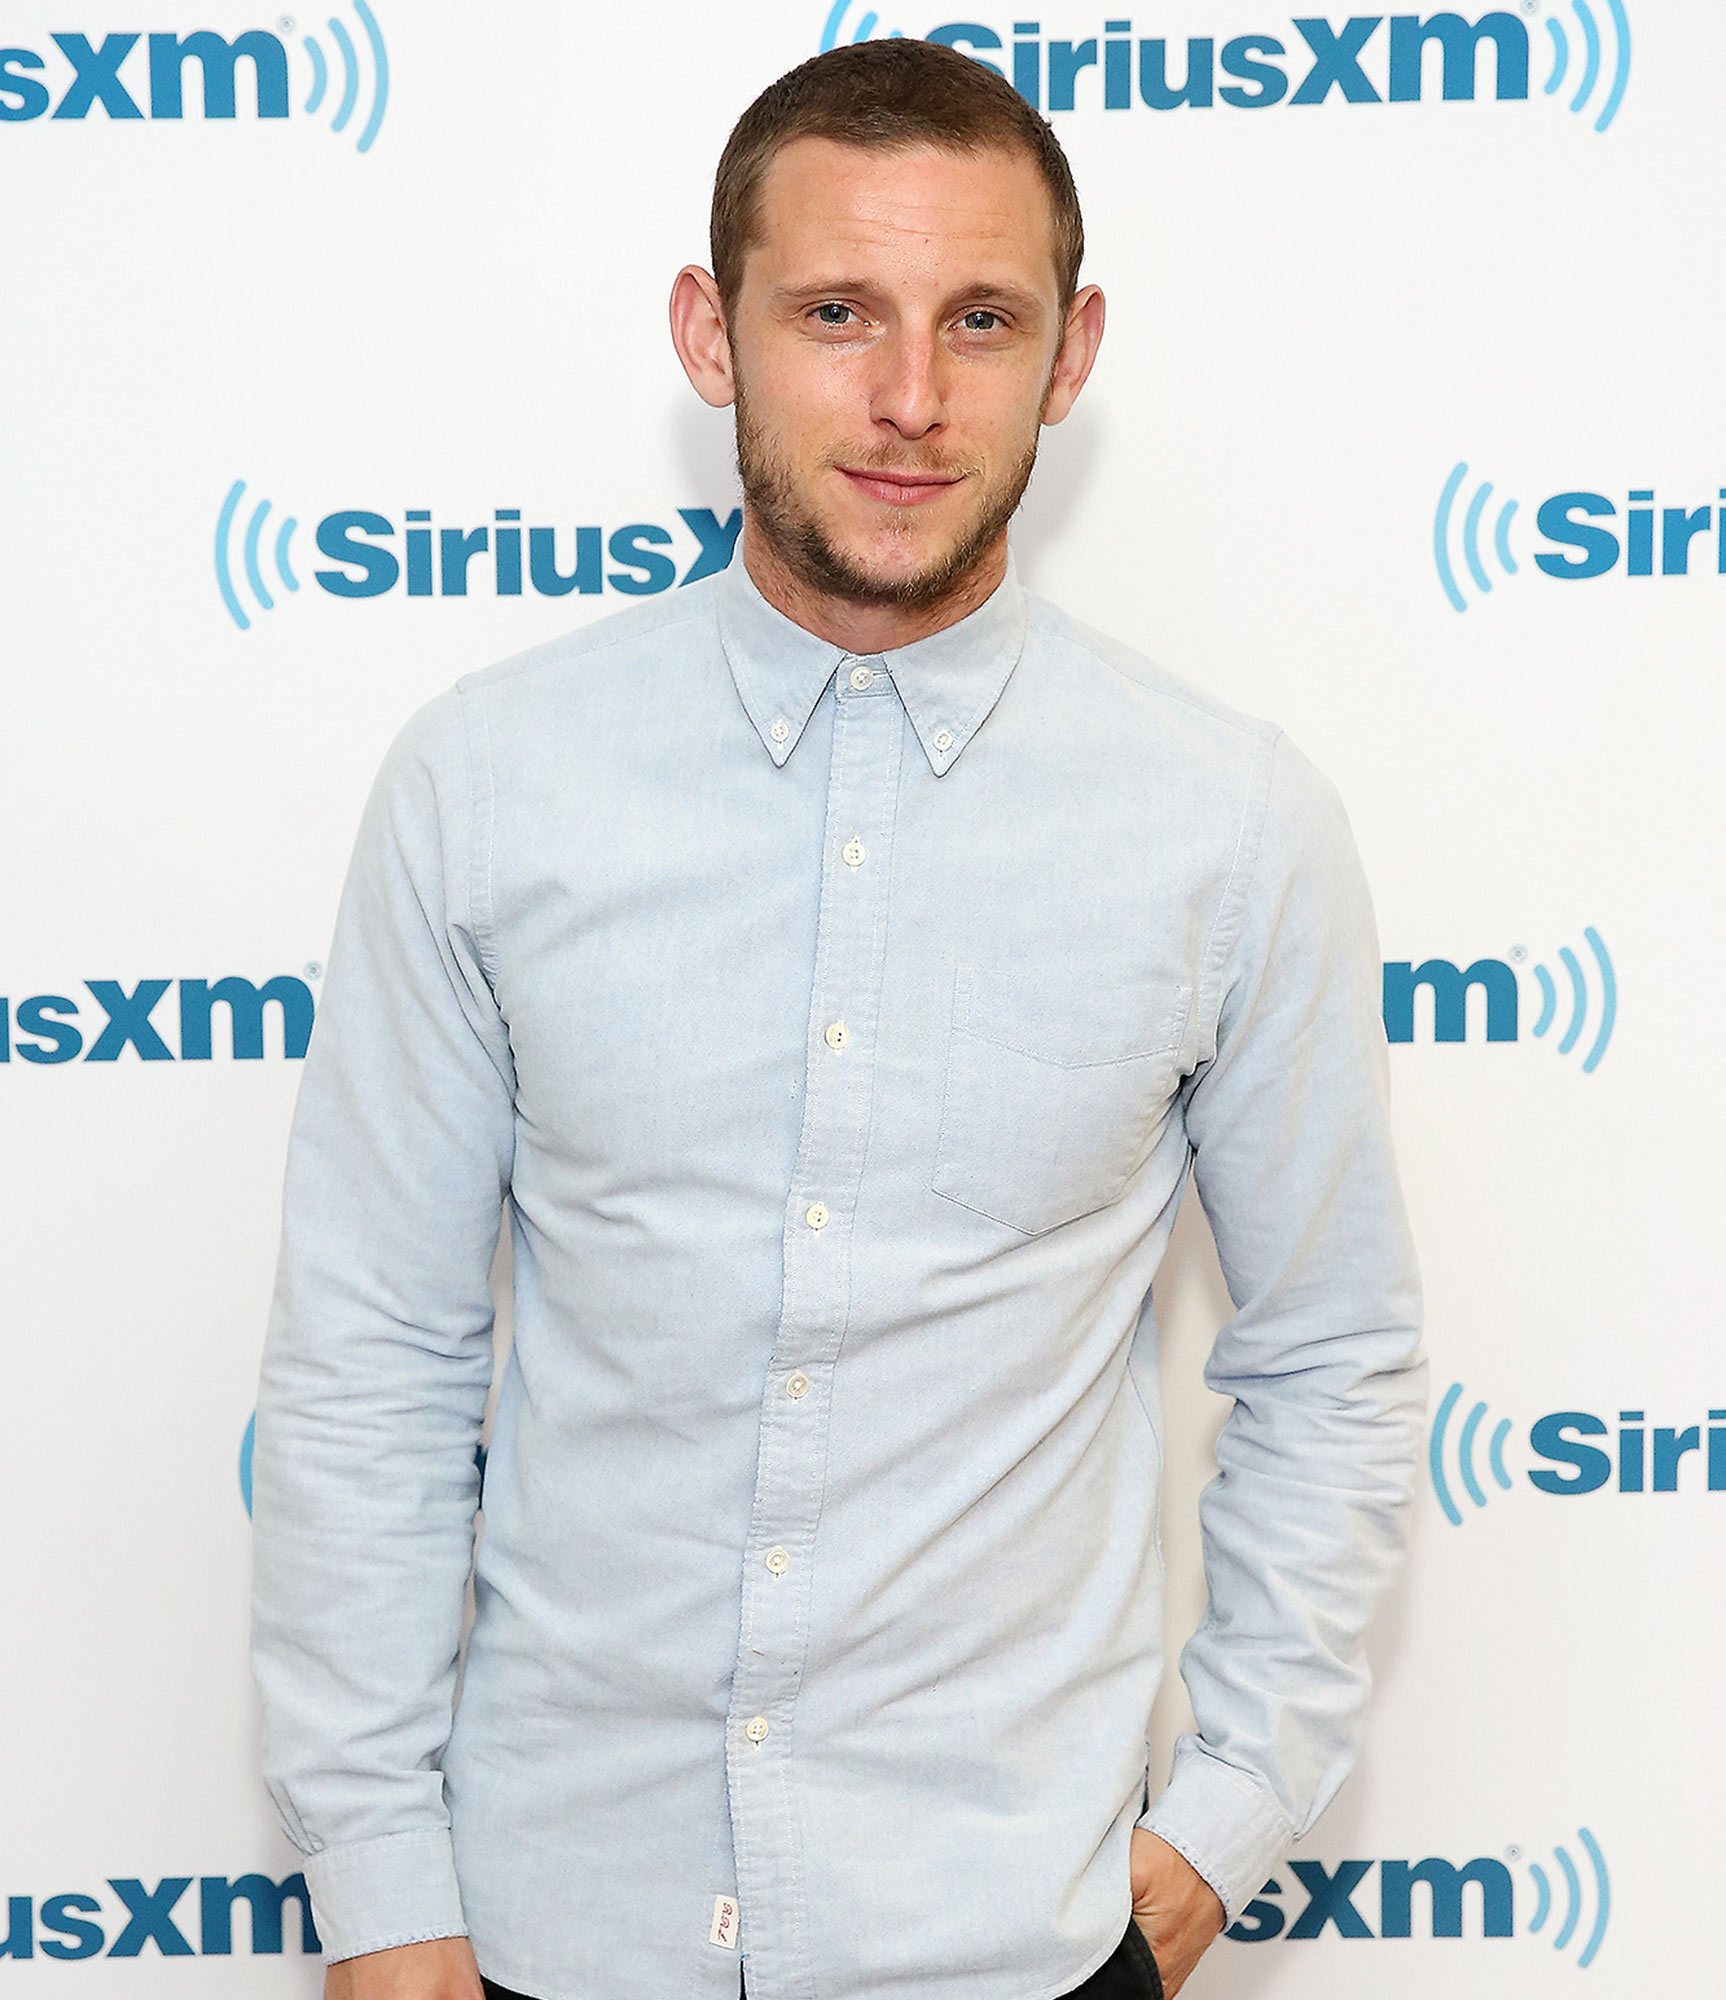 JAMIE BELL: STUDY UP ON ANATOMY